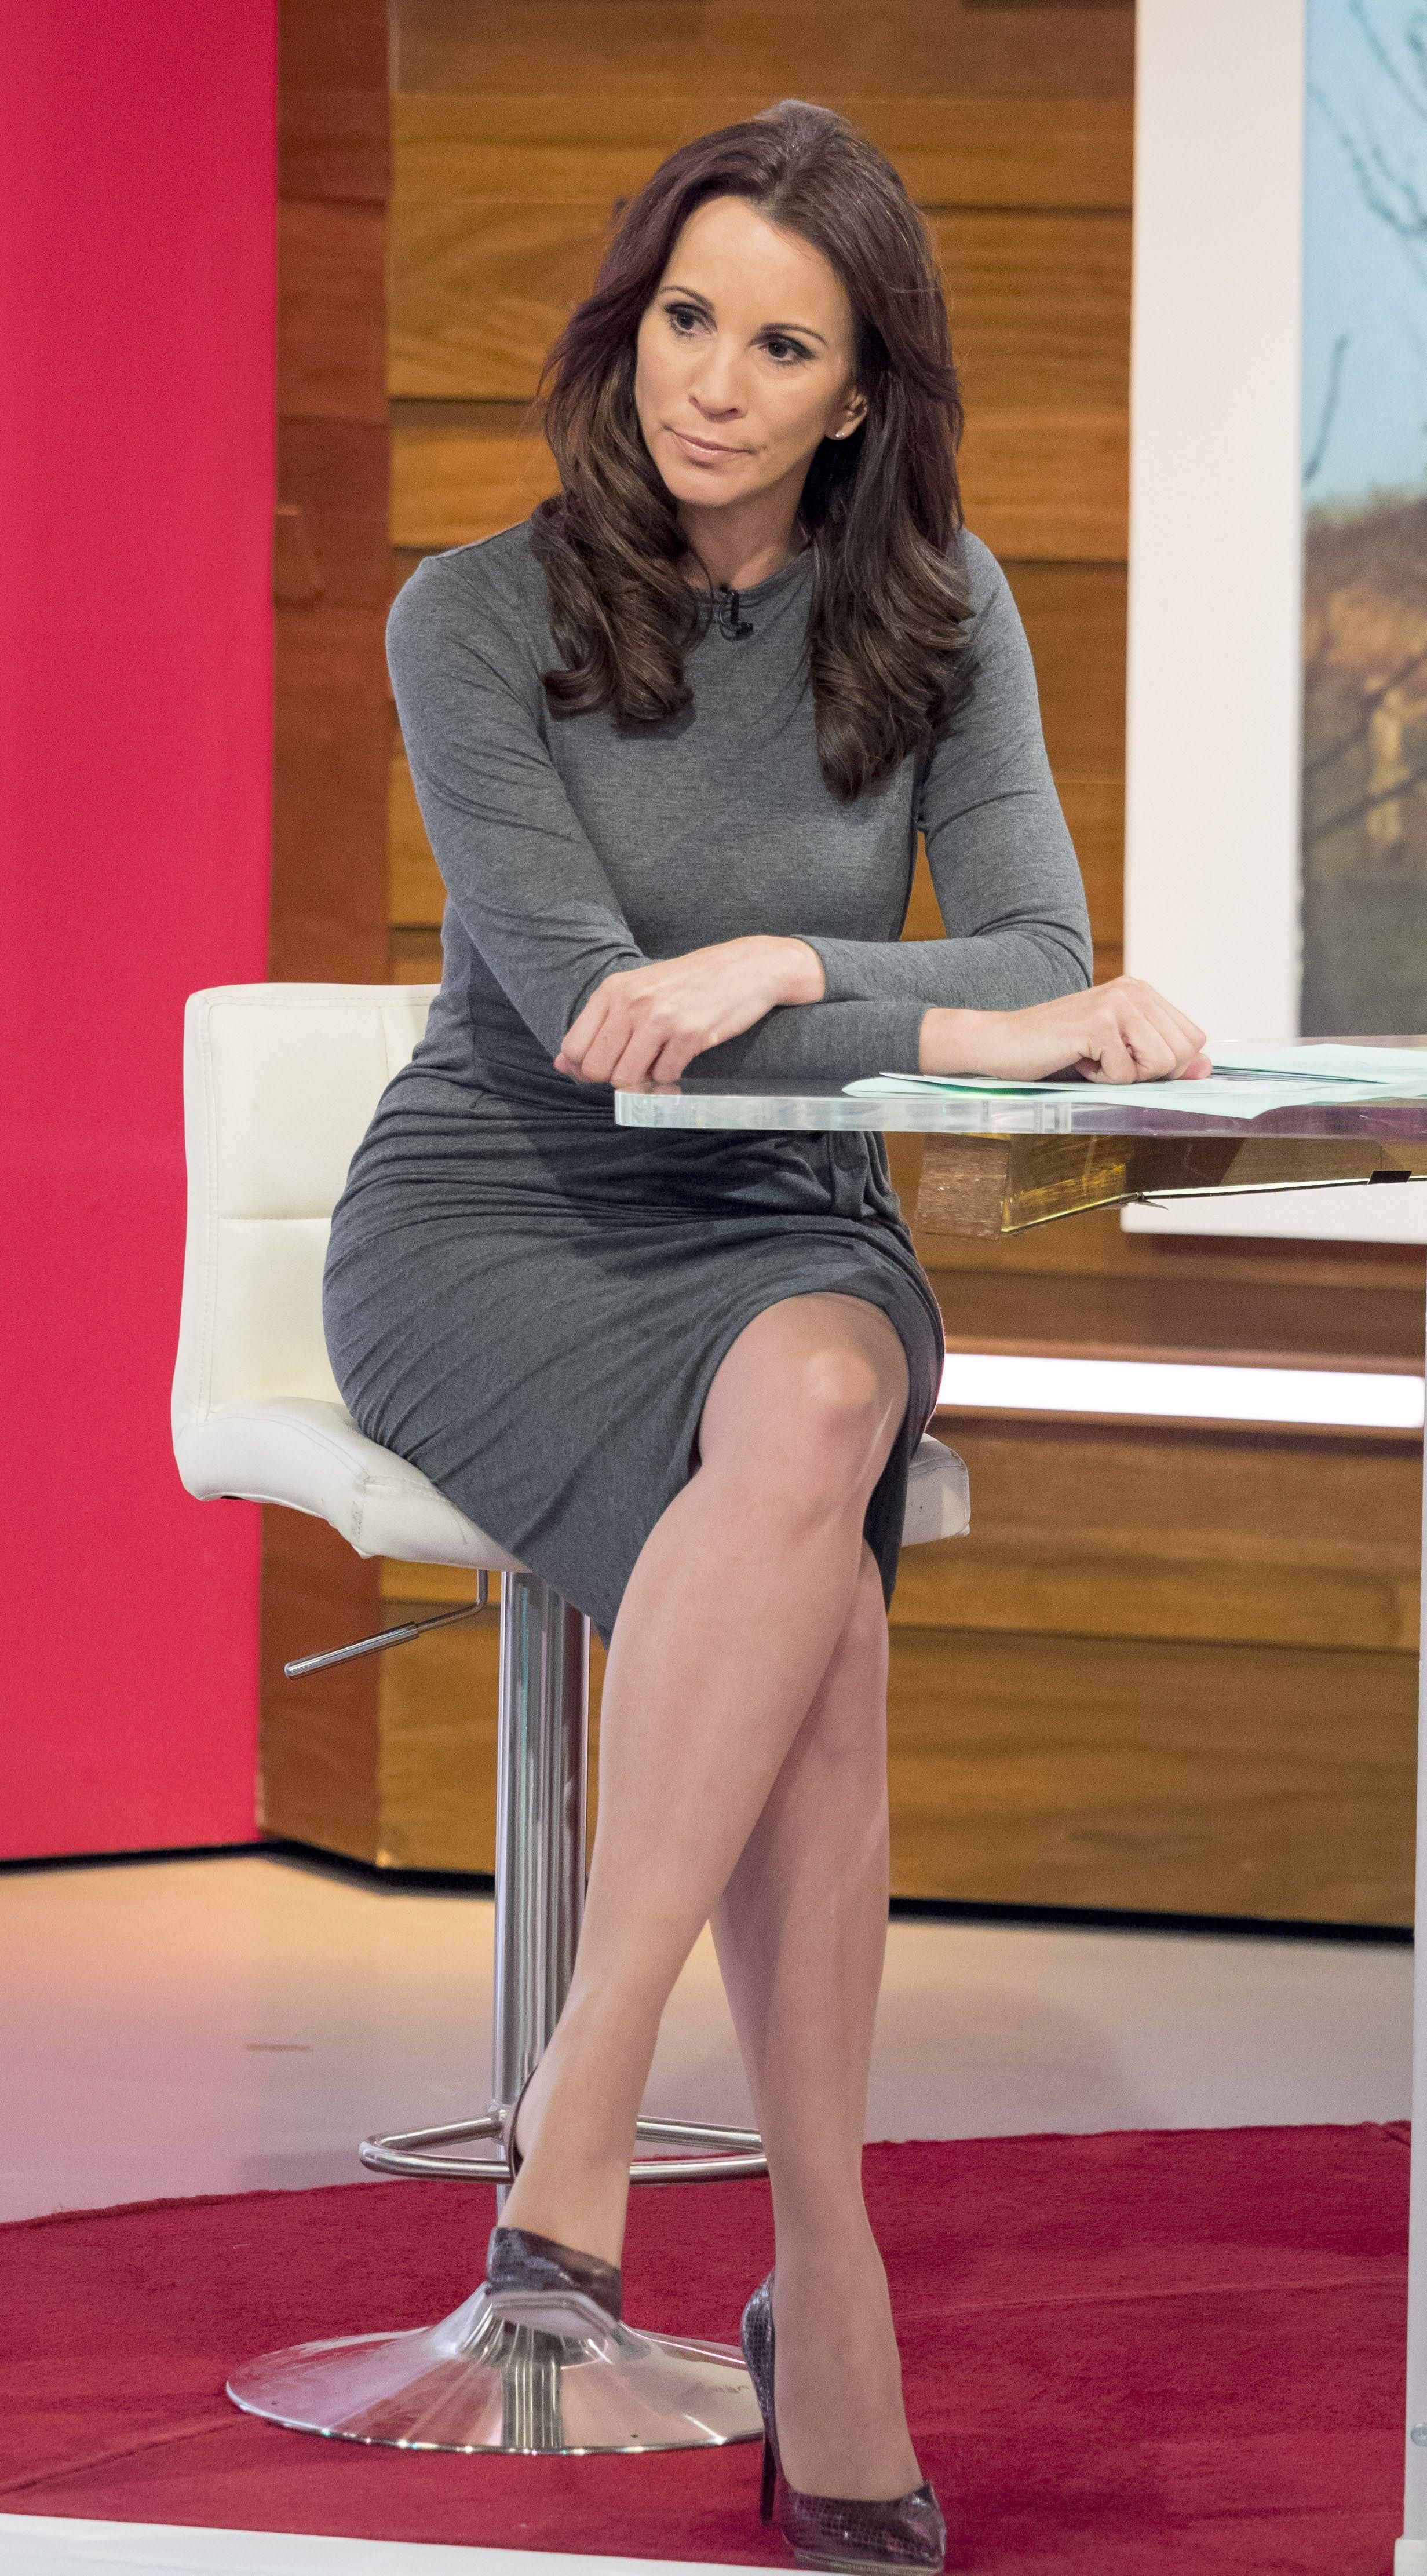 Think, andrea mclean loose women